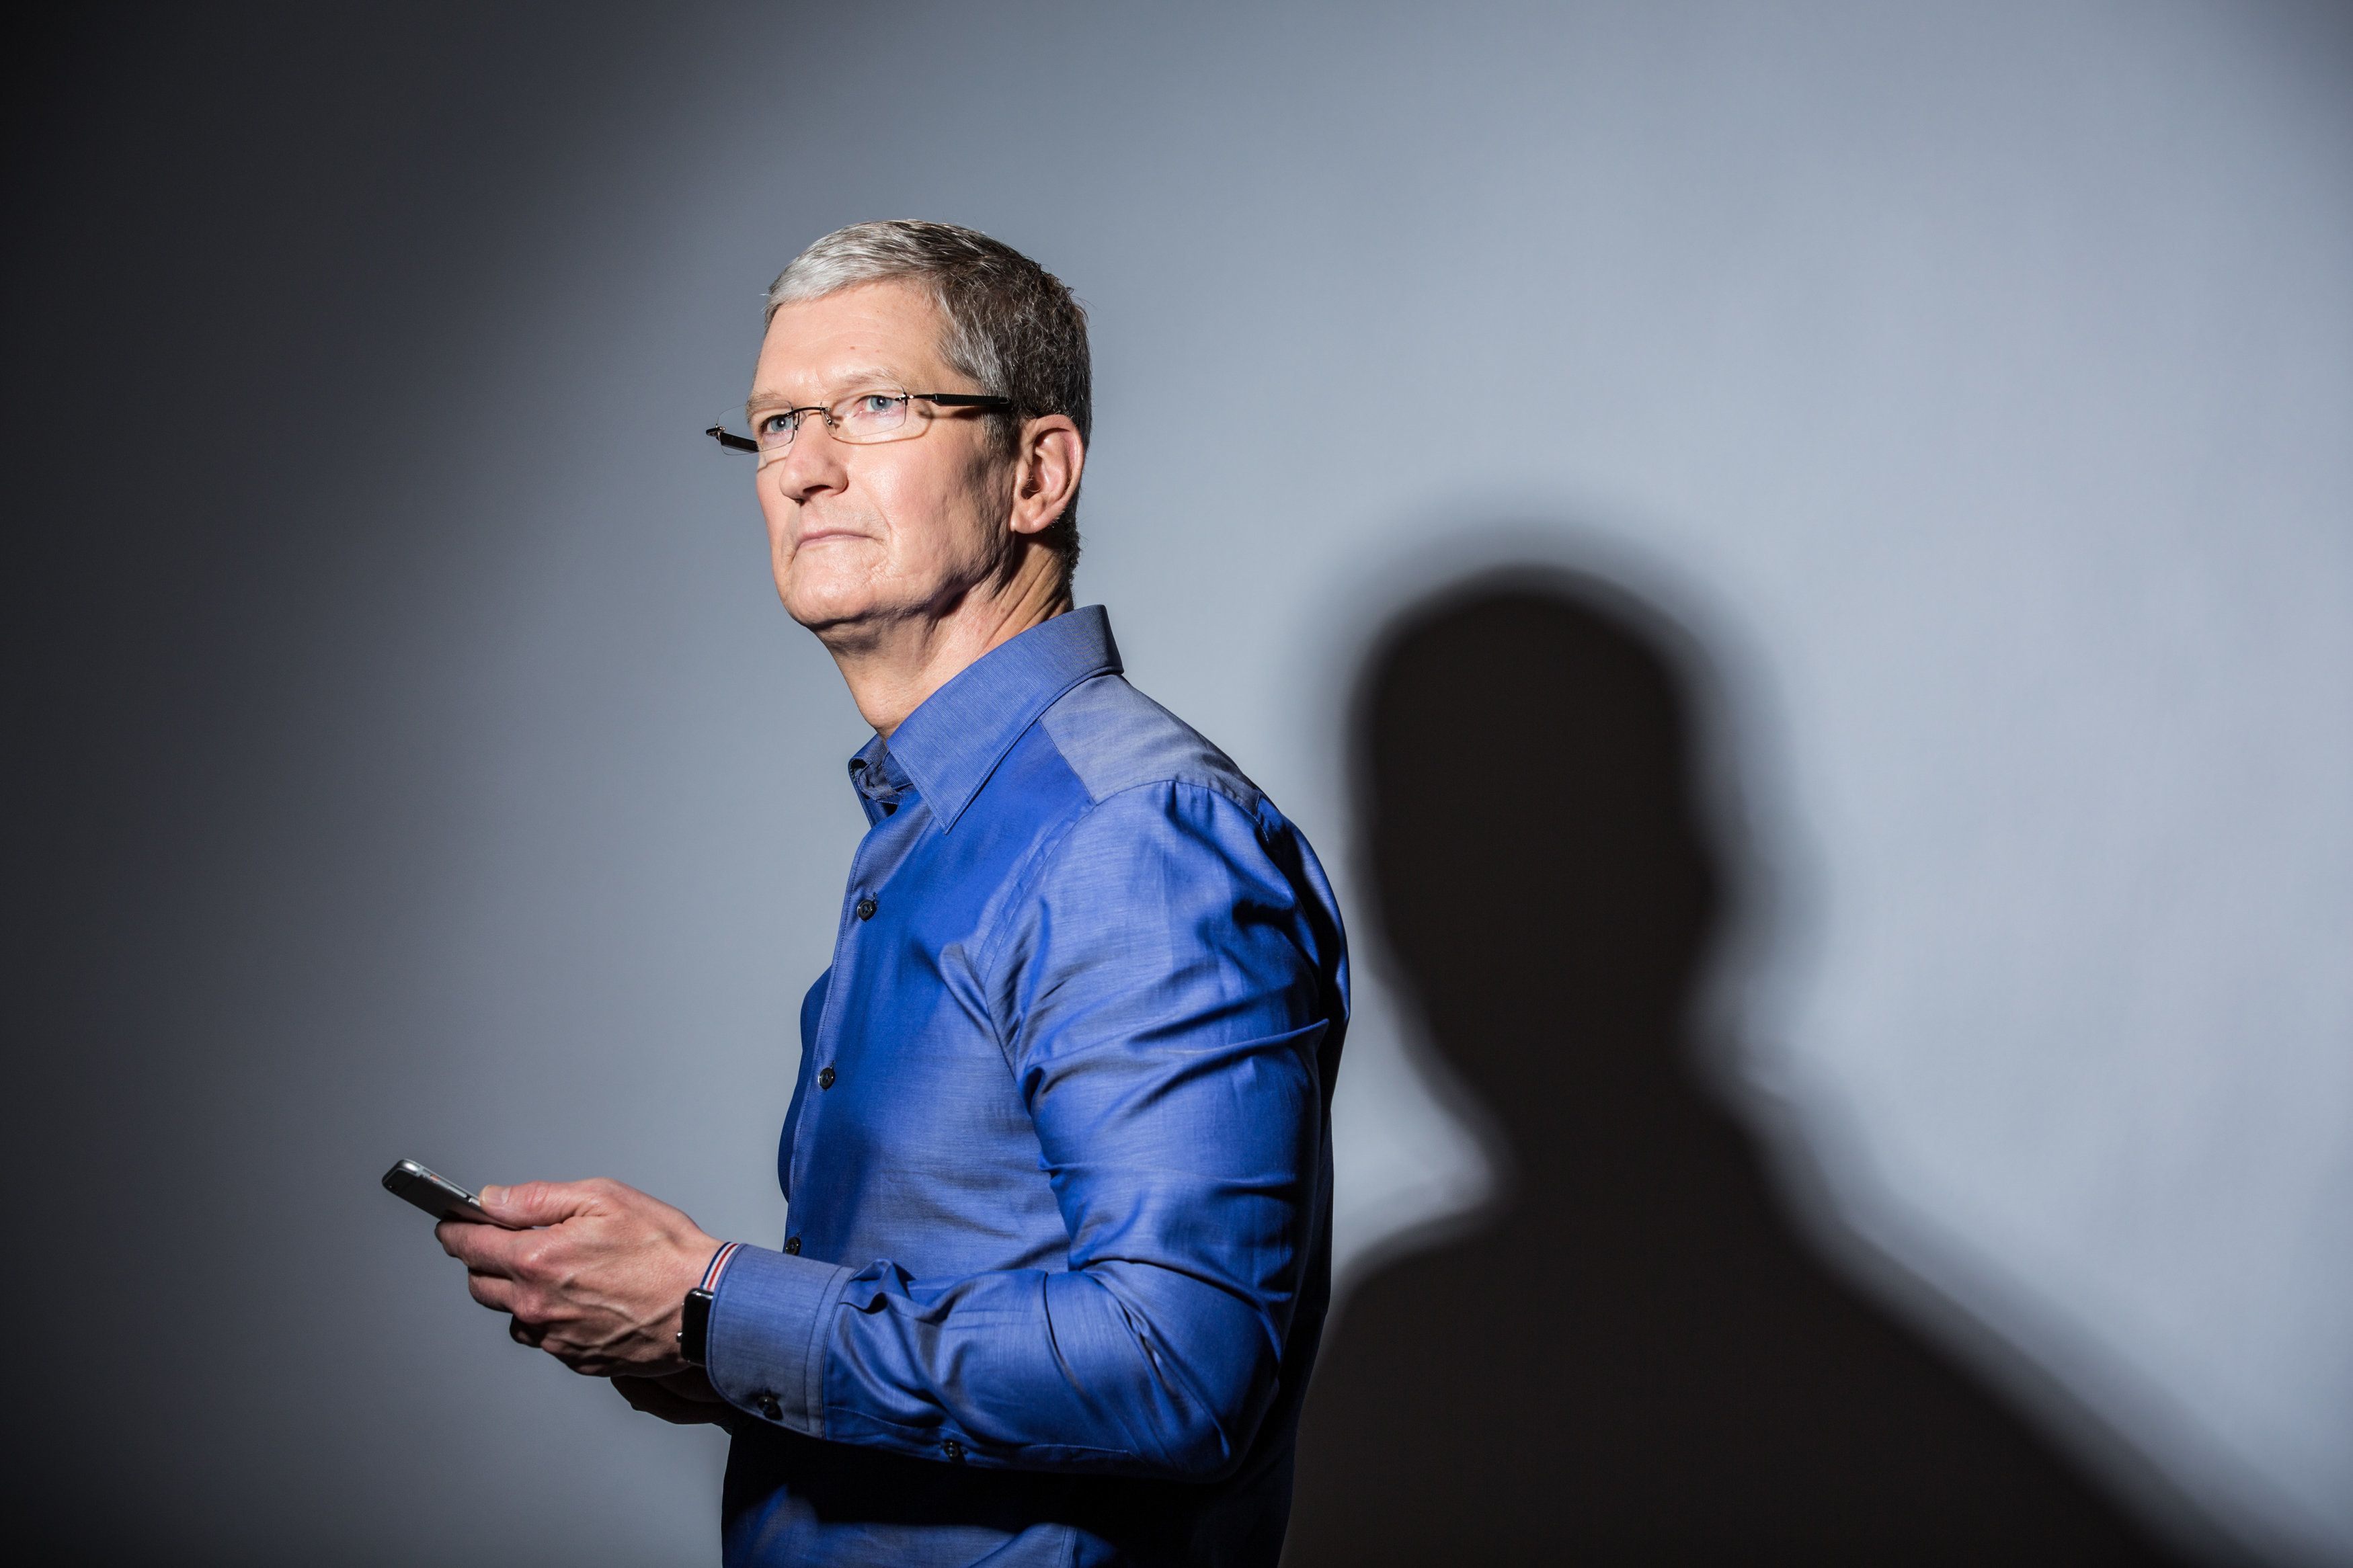 CUPERTINO, CA - JULY 28: Apple CEO Tim Cook poses for a portrait at Apple's global headquarters in Cupertino, California on July 28, 2016. Cook has been CEO for five years; he took over for Steve Jobs shortly before Jobs' death. (Photo by Andrew Burton/For The Washington Post via Getty Images)